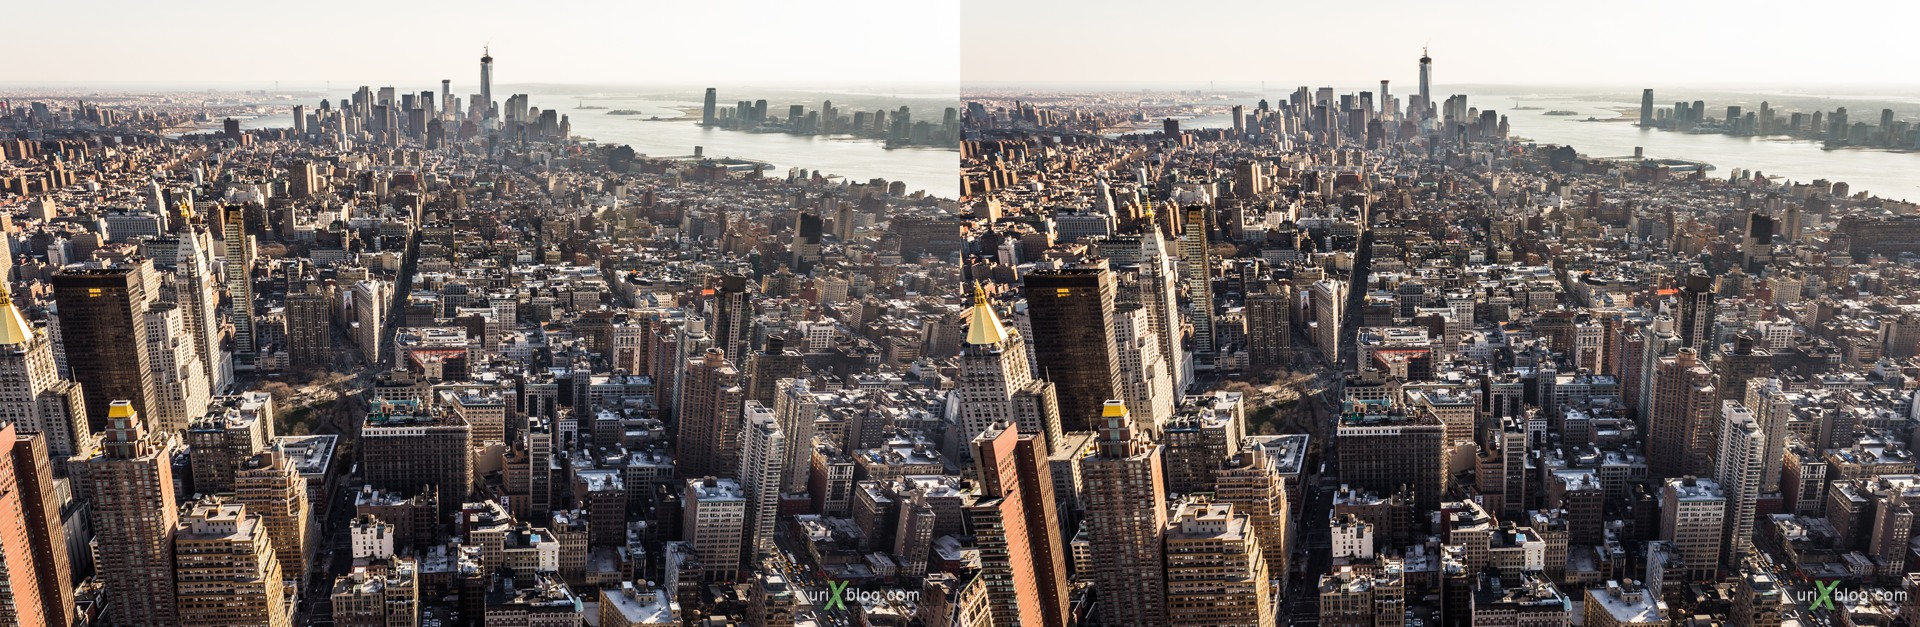 2013, NYC, New York, Lower Manhattan, Empire State Building, view from the top, city, building, skyscraper, panorama, 3D, stereo pair, cross-eyed, crossview, cross view stereo pair, stereoscopic